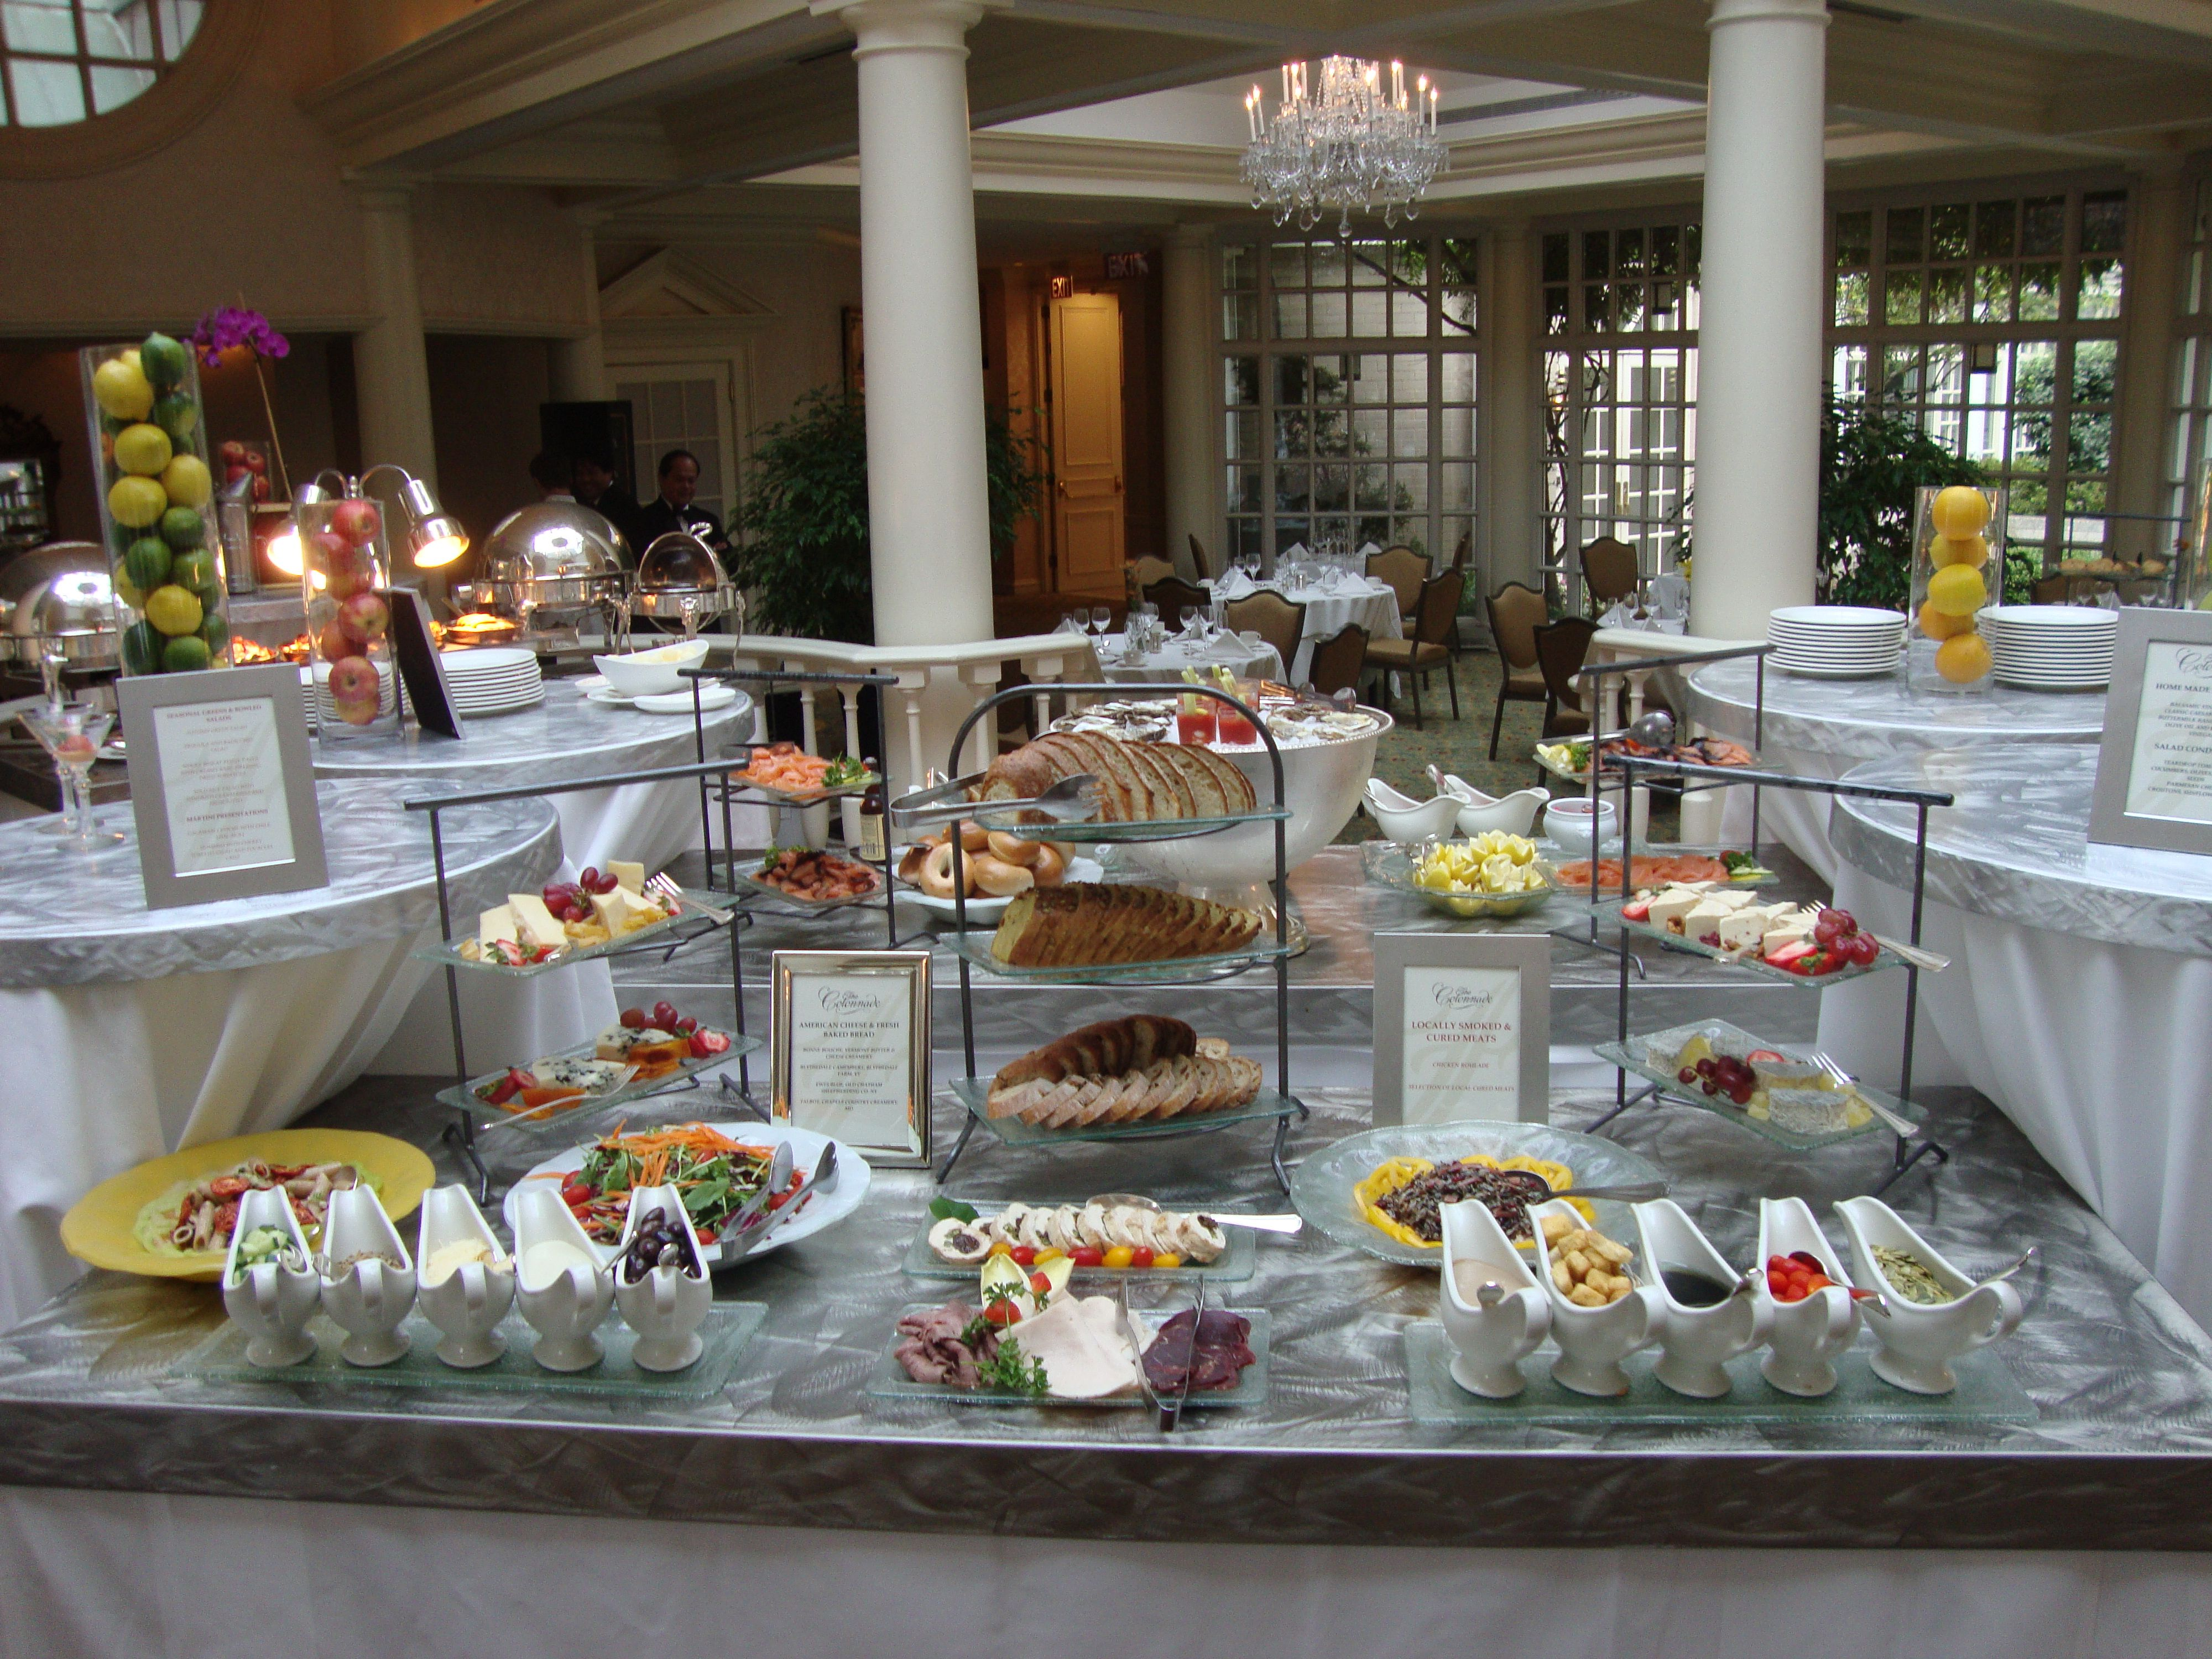 Easter Brunch In The Colonnade At Farimont Washington Dc